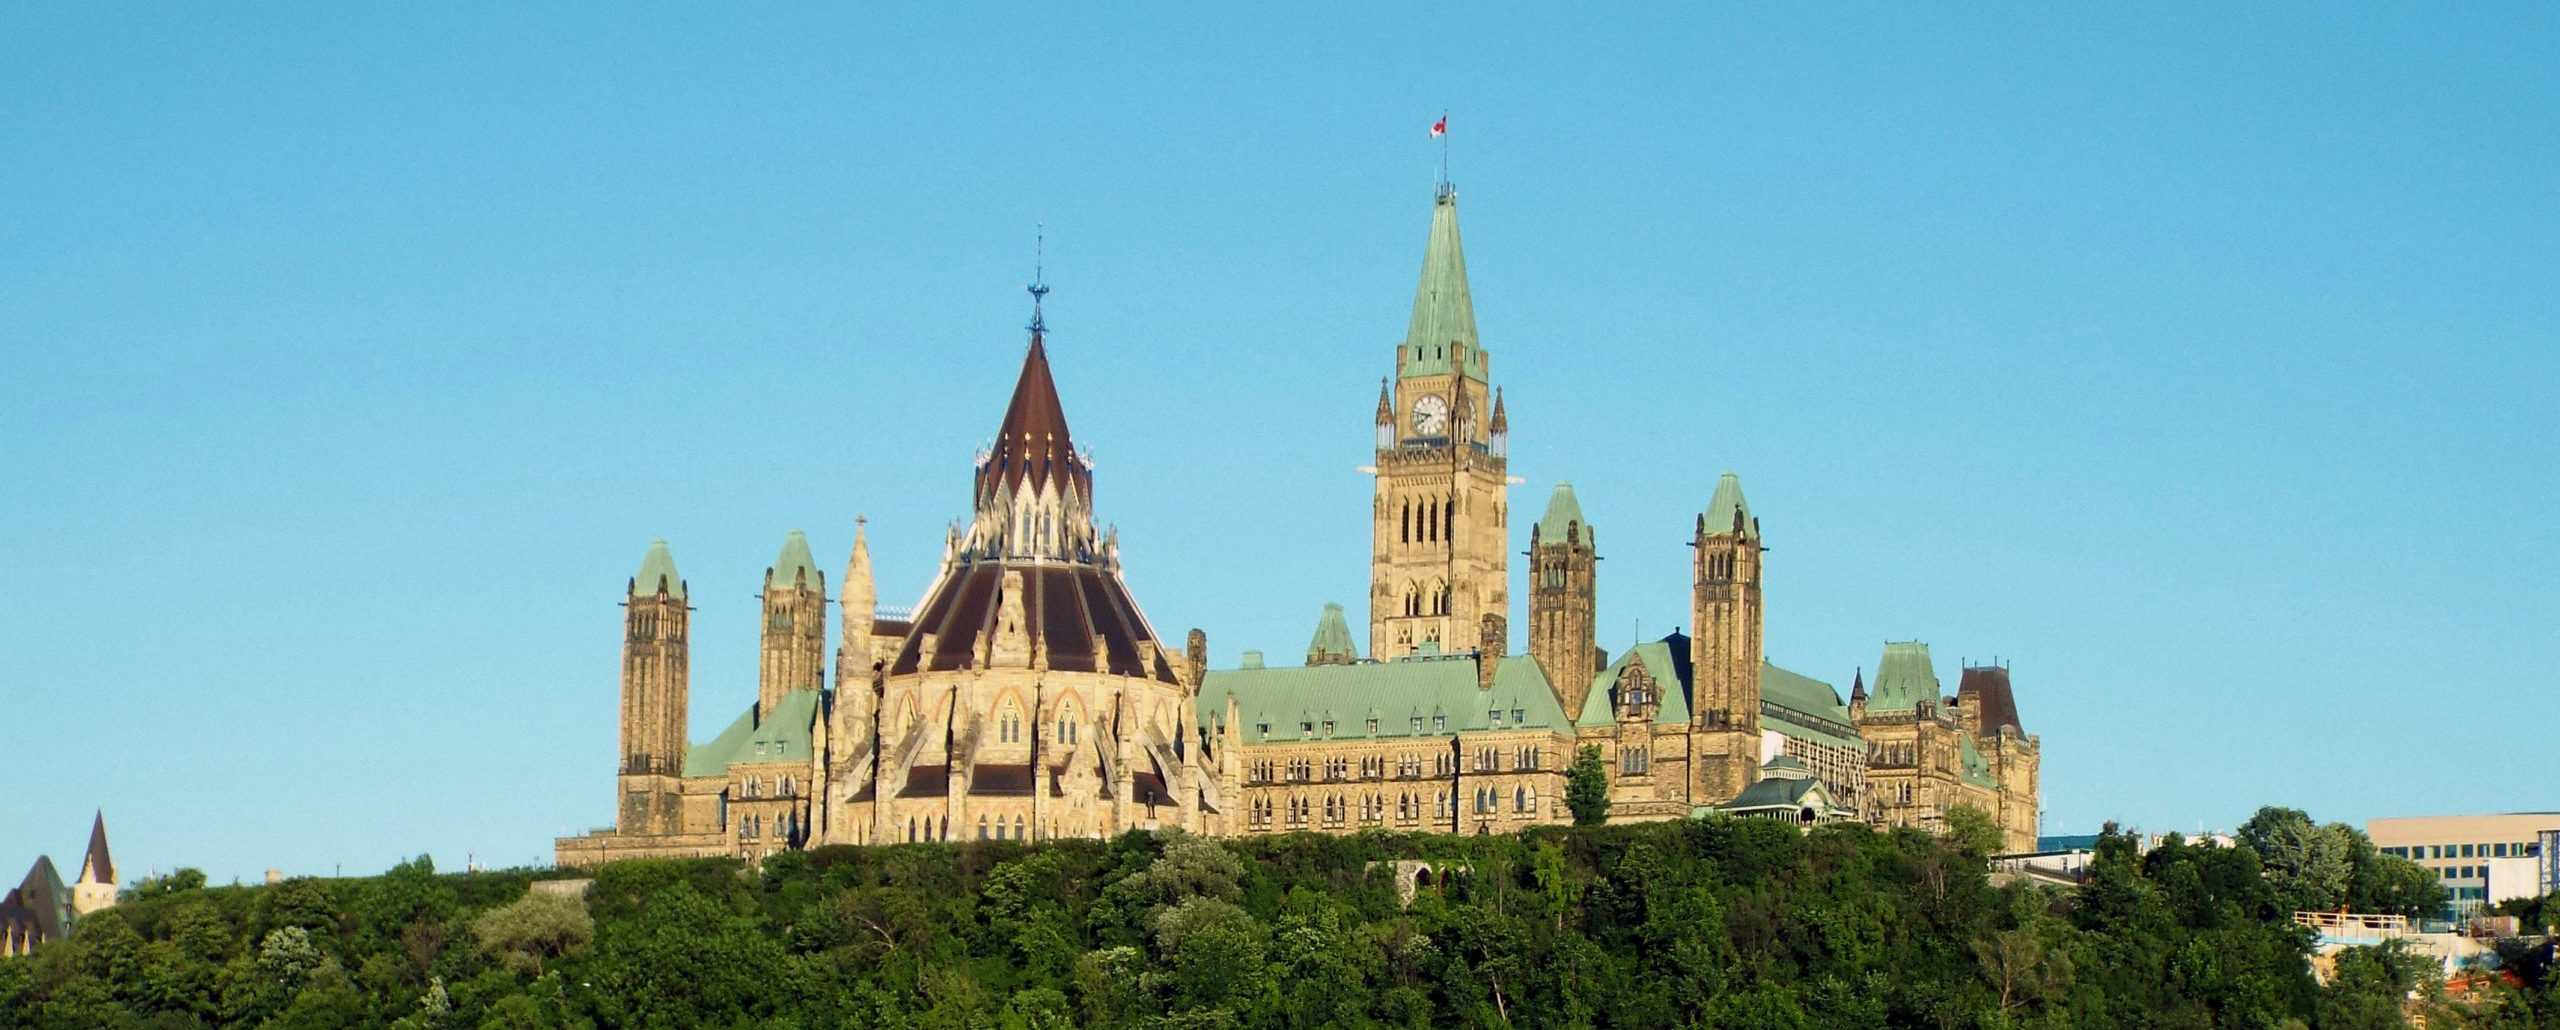 A view of parliament hill from across the river